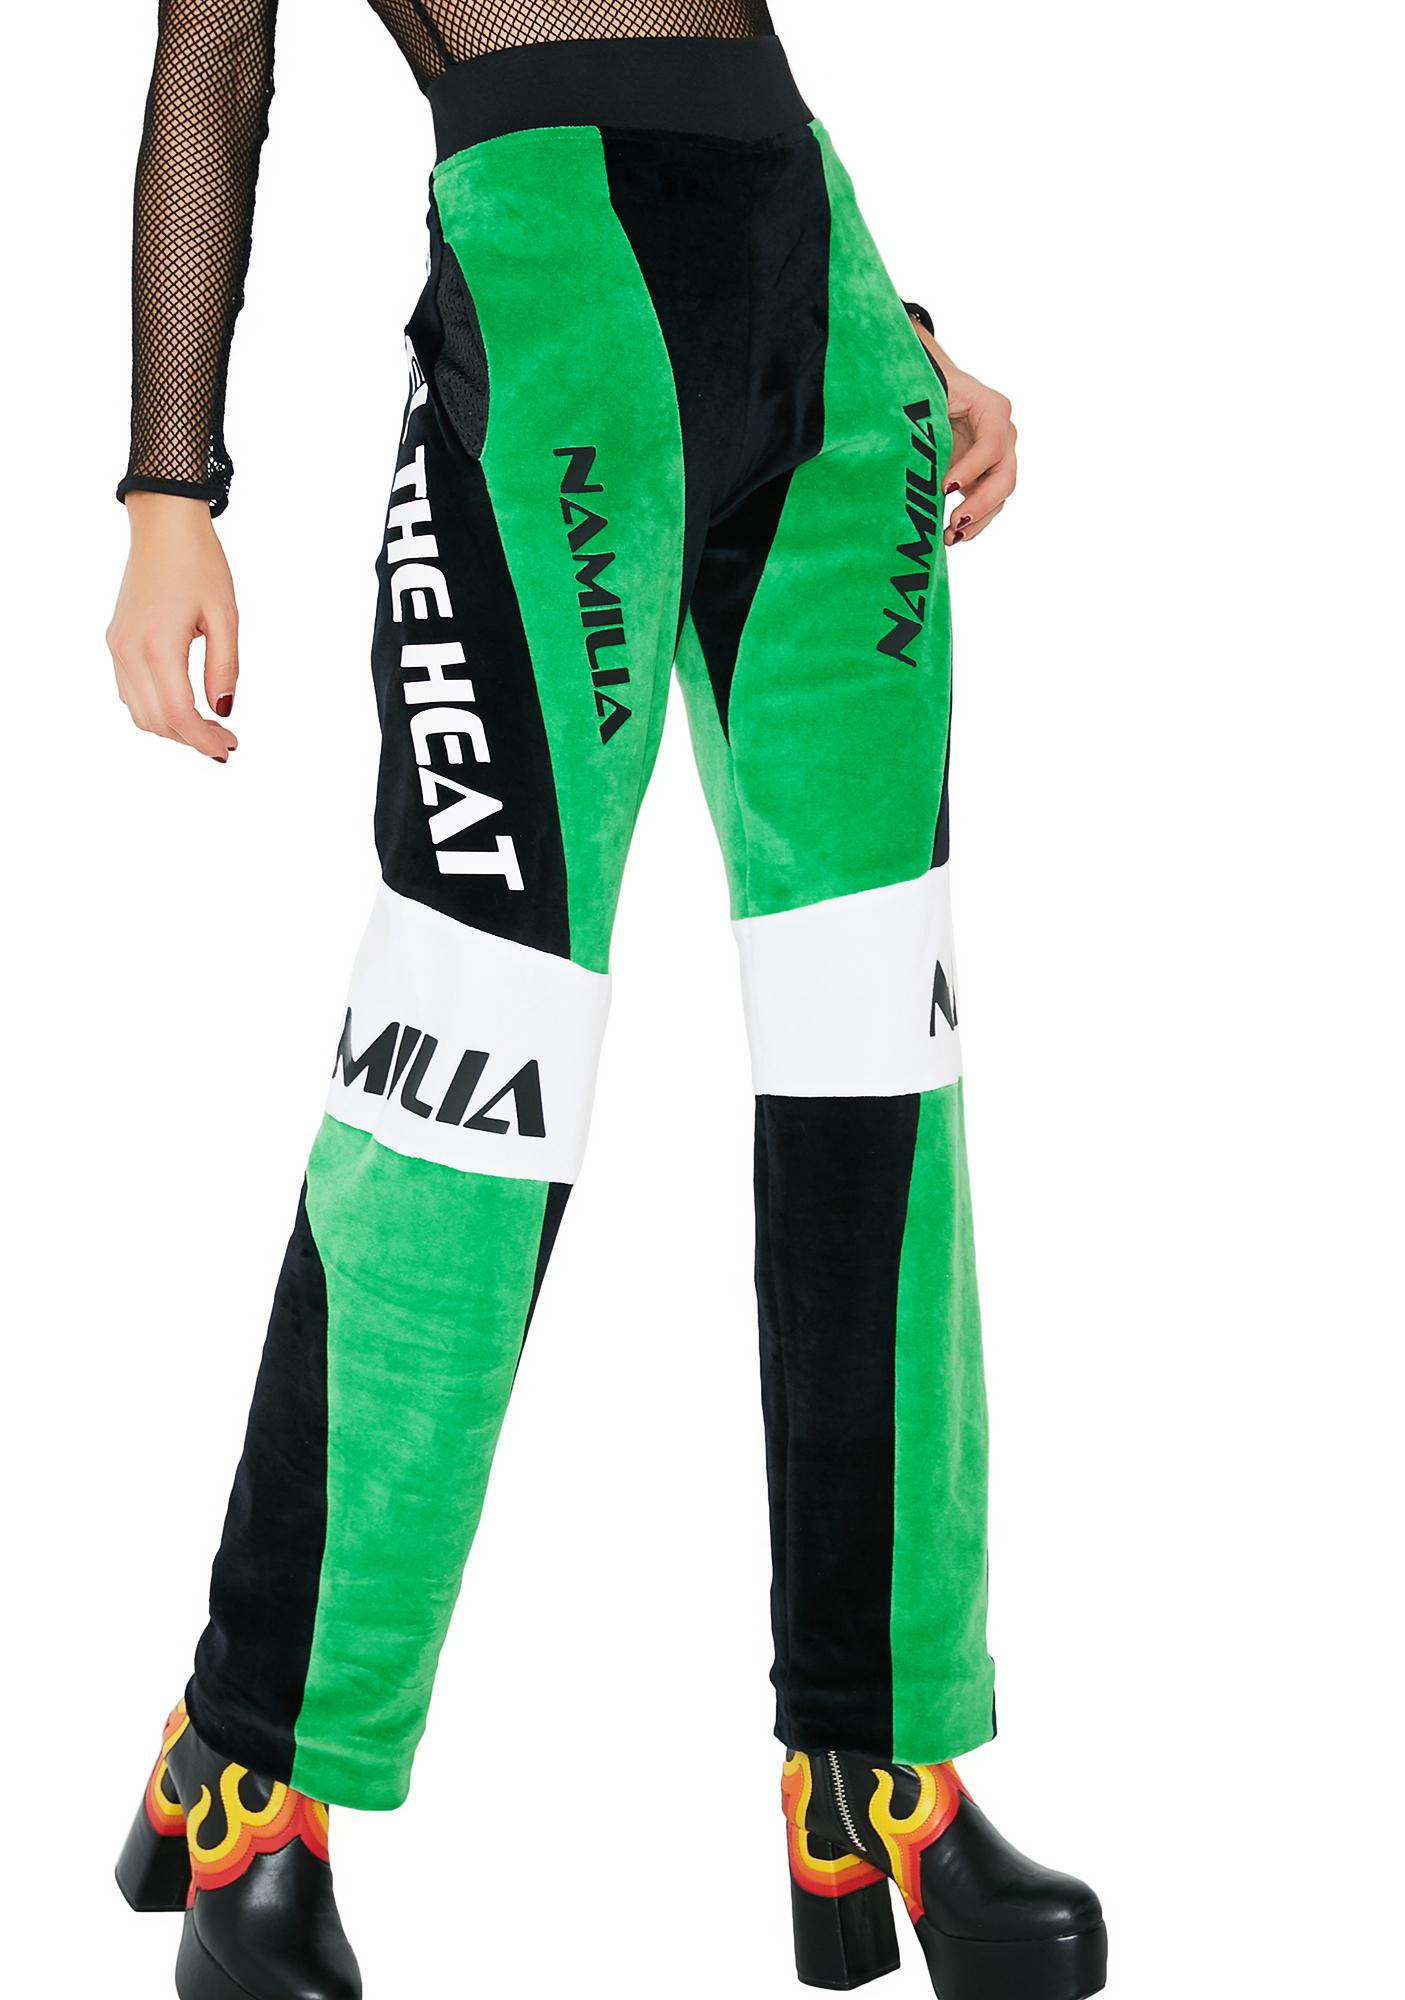 Namilia Velour Motocross Trousers